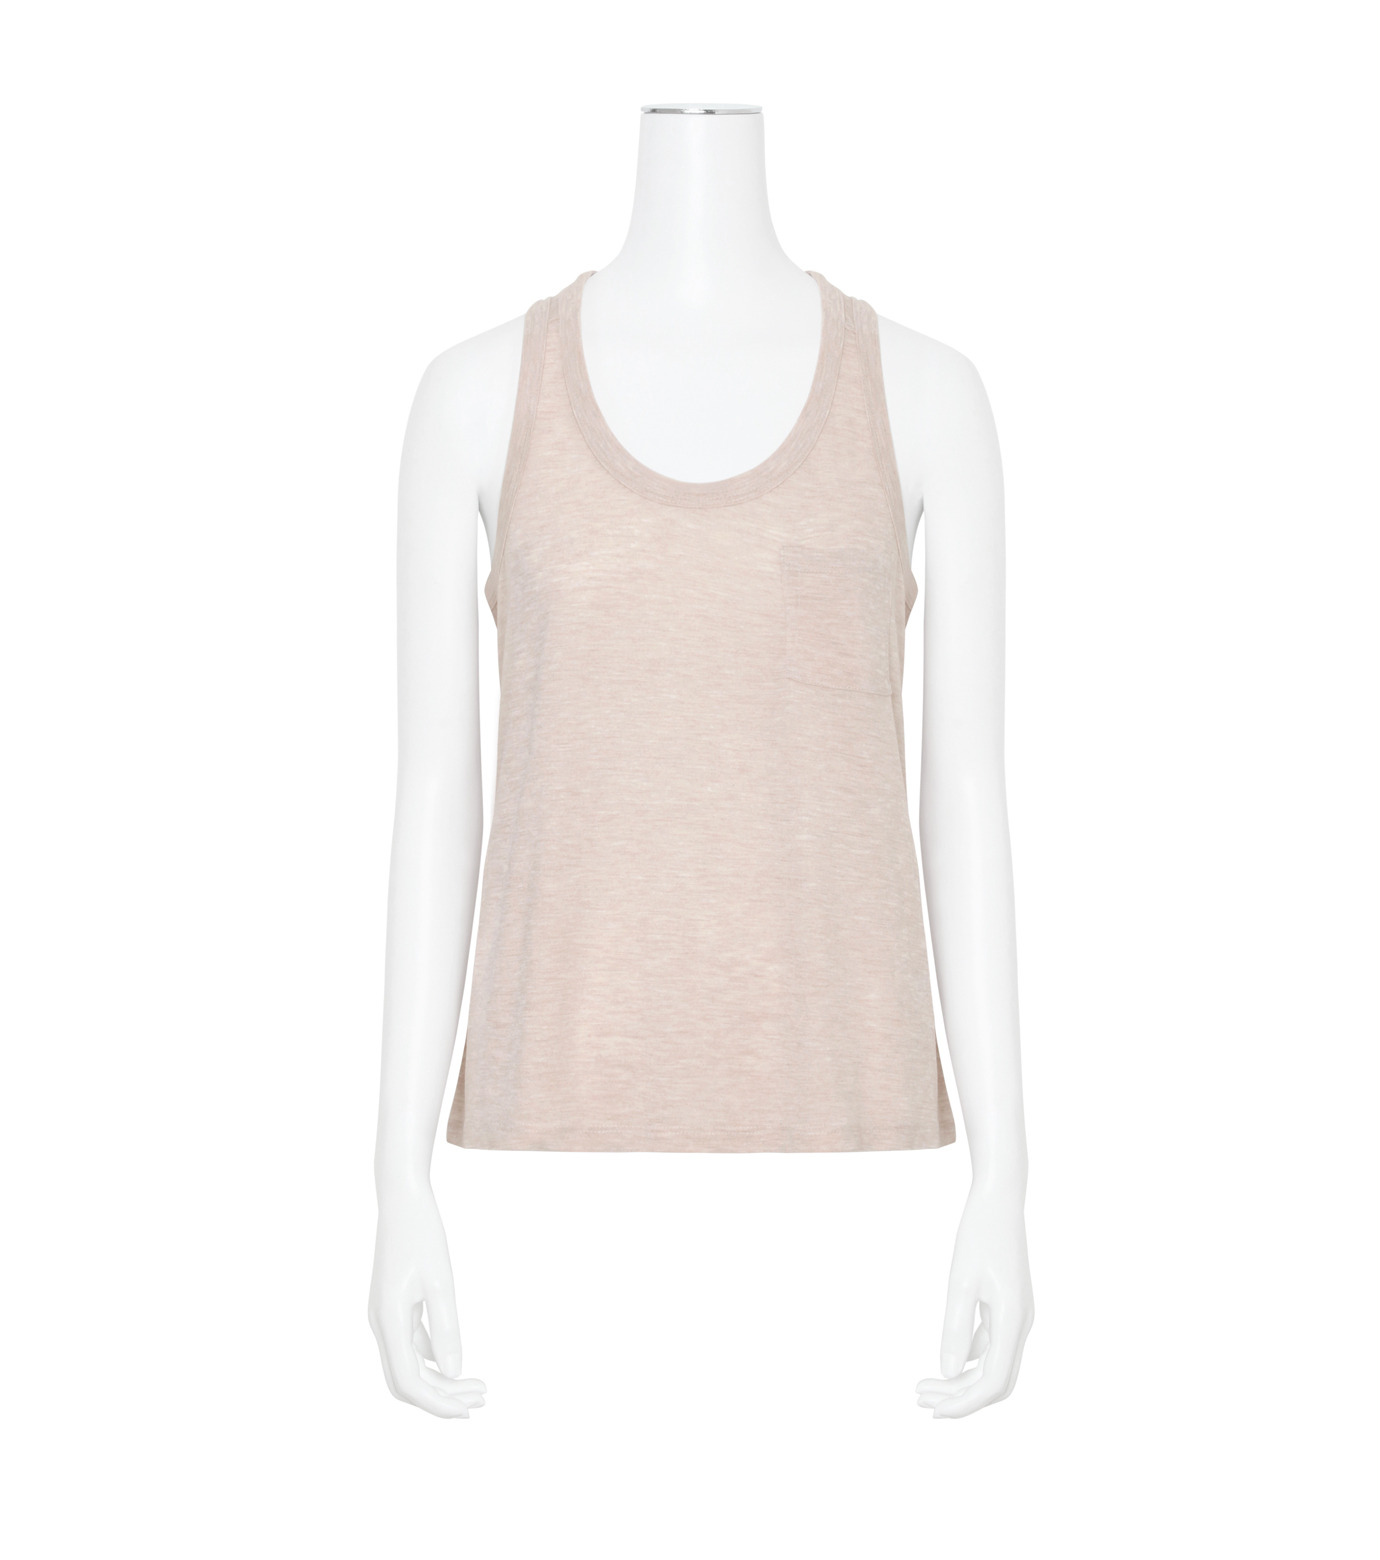 T by Alexander Wang(ティーバイ アレキサンダーワン)のJersey Tank w/Pkt-LIGHT PINK(カットソー/cut and sewn)-400128R17-71 拡大詳細画像1